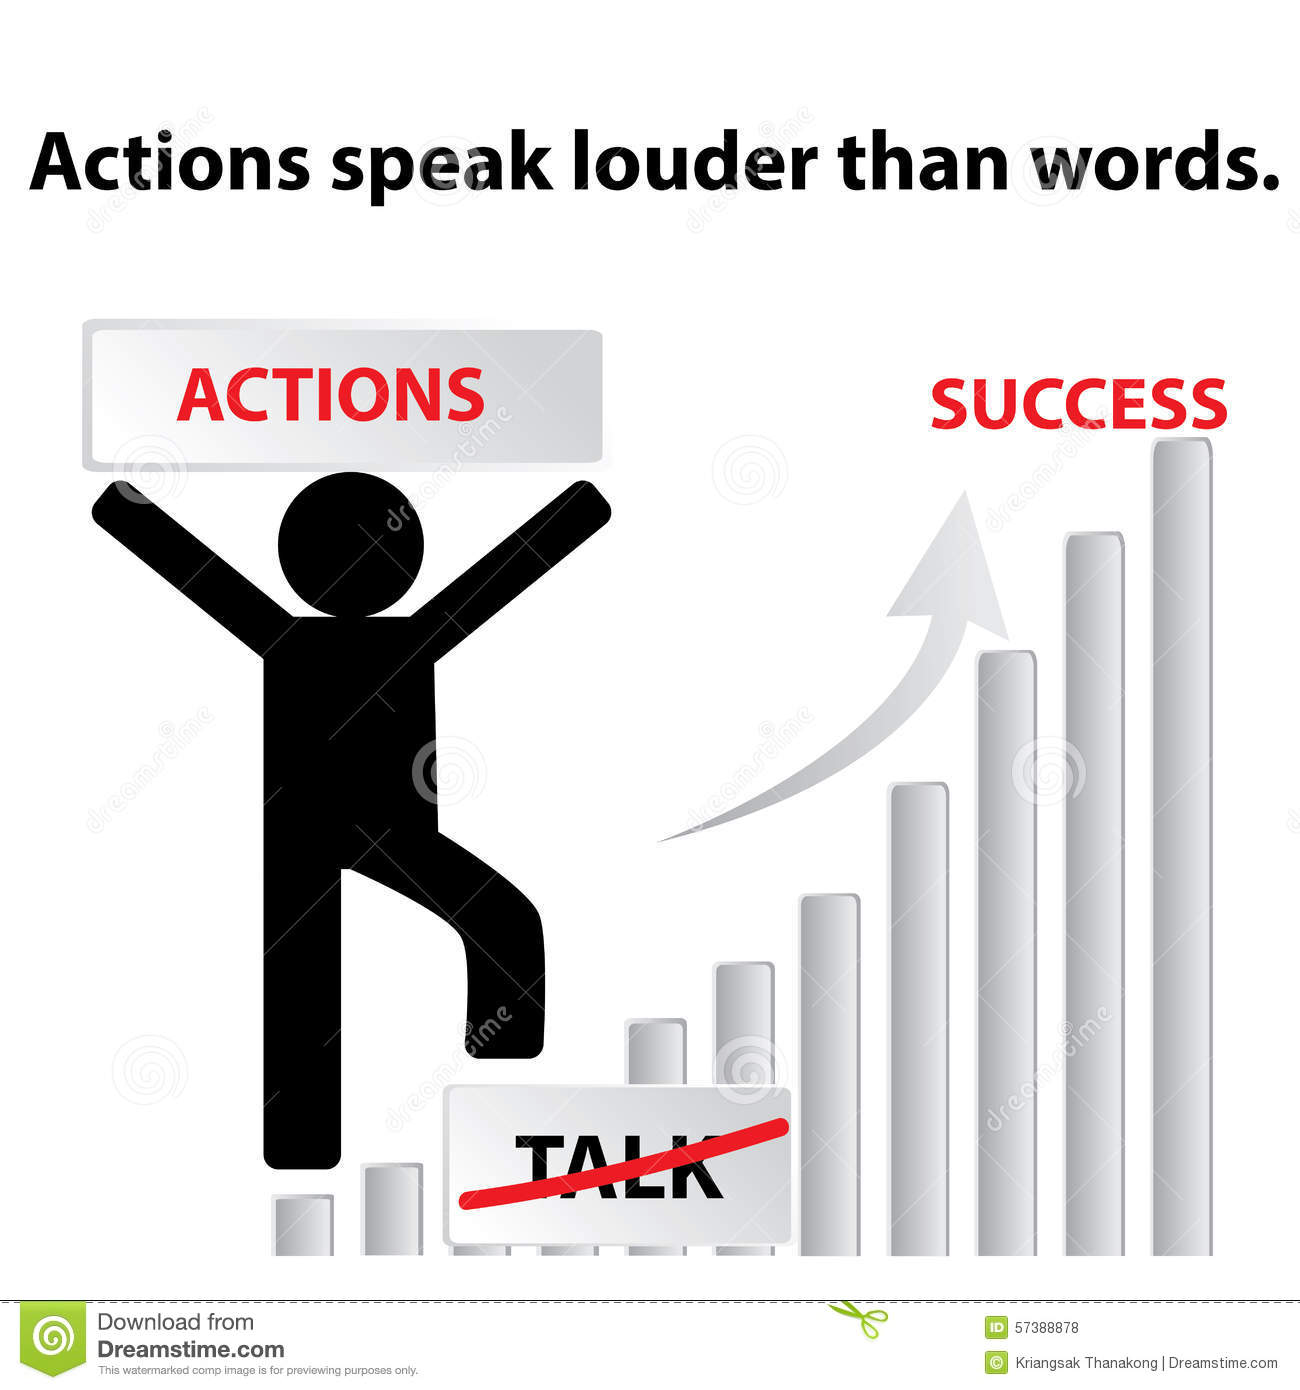 Actions are louder than words 2